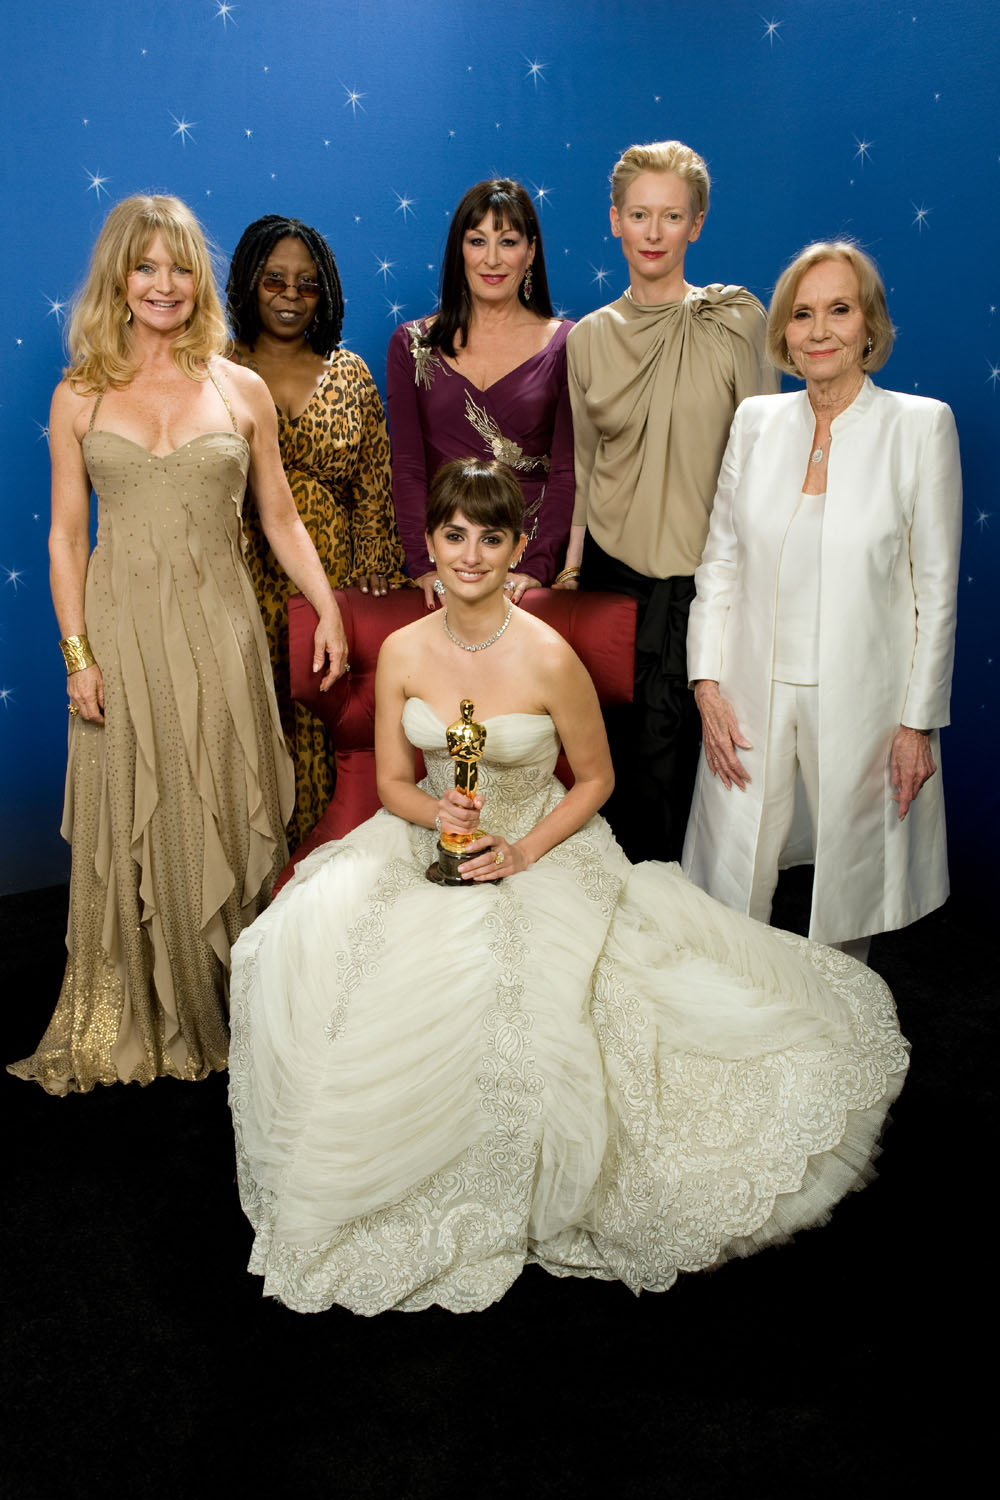 Goldie Hawn, Whoopi Goldberg, Anjelica Huston, Penélope Cruz, Tilda Swinton, and Eva Marie Saint